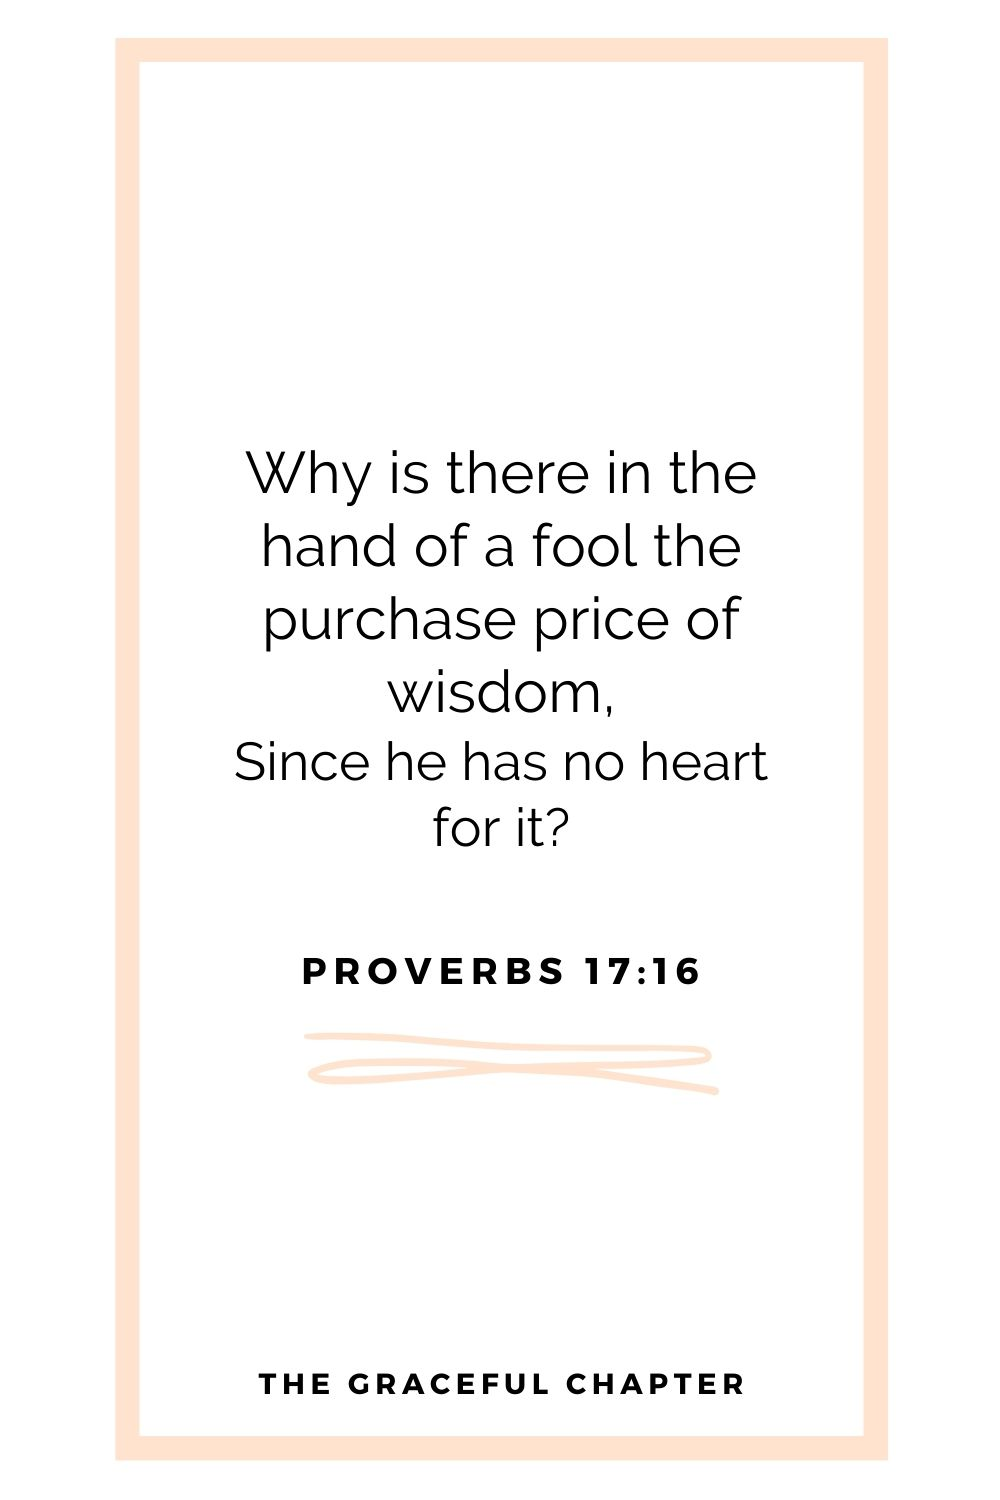 Why is there in the hand of a fool the purchase price of wisdom, Since he has no heart for it? Proverbs 17:16